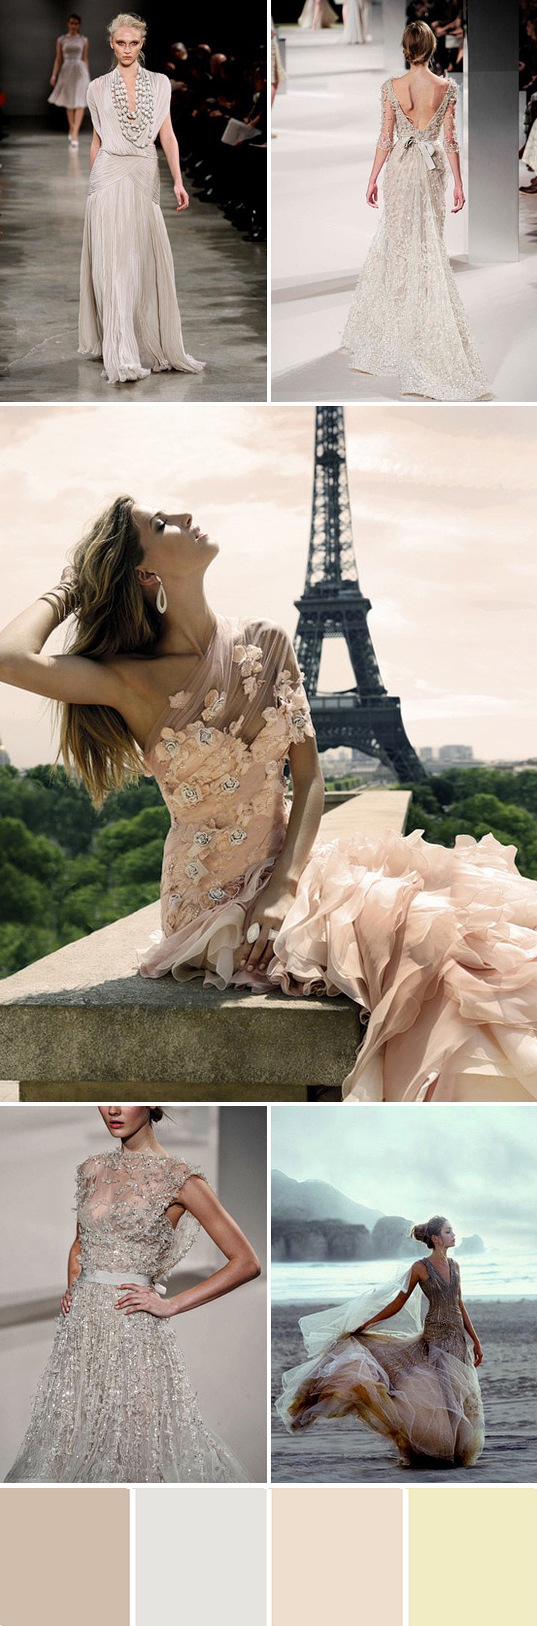 Beautiful dresses #http://www.theprettyblog.com/